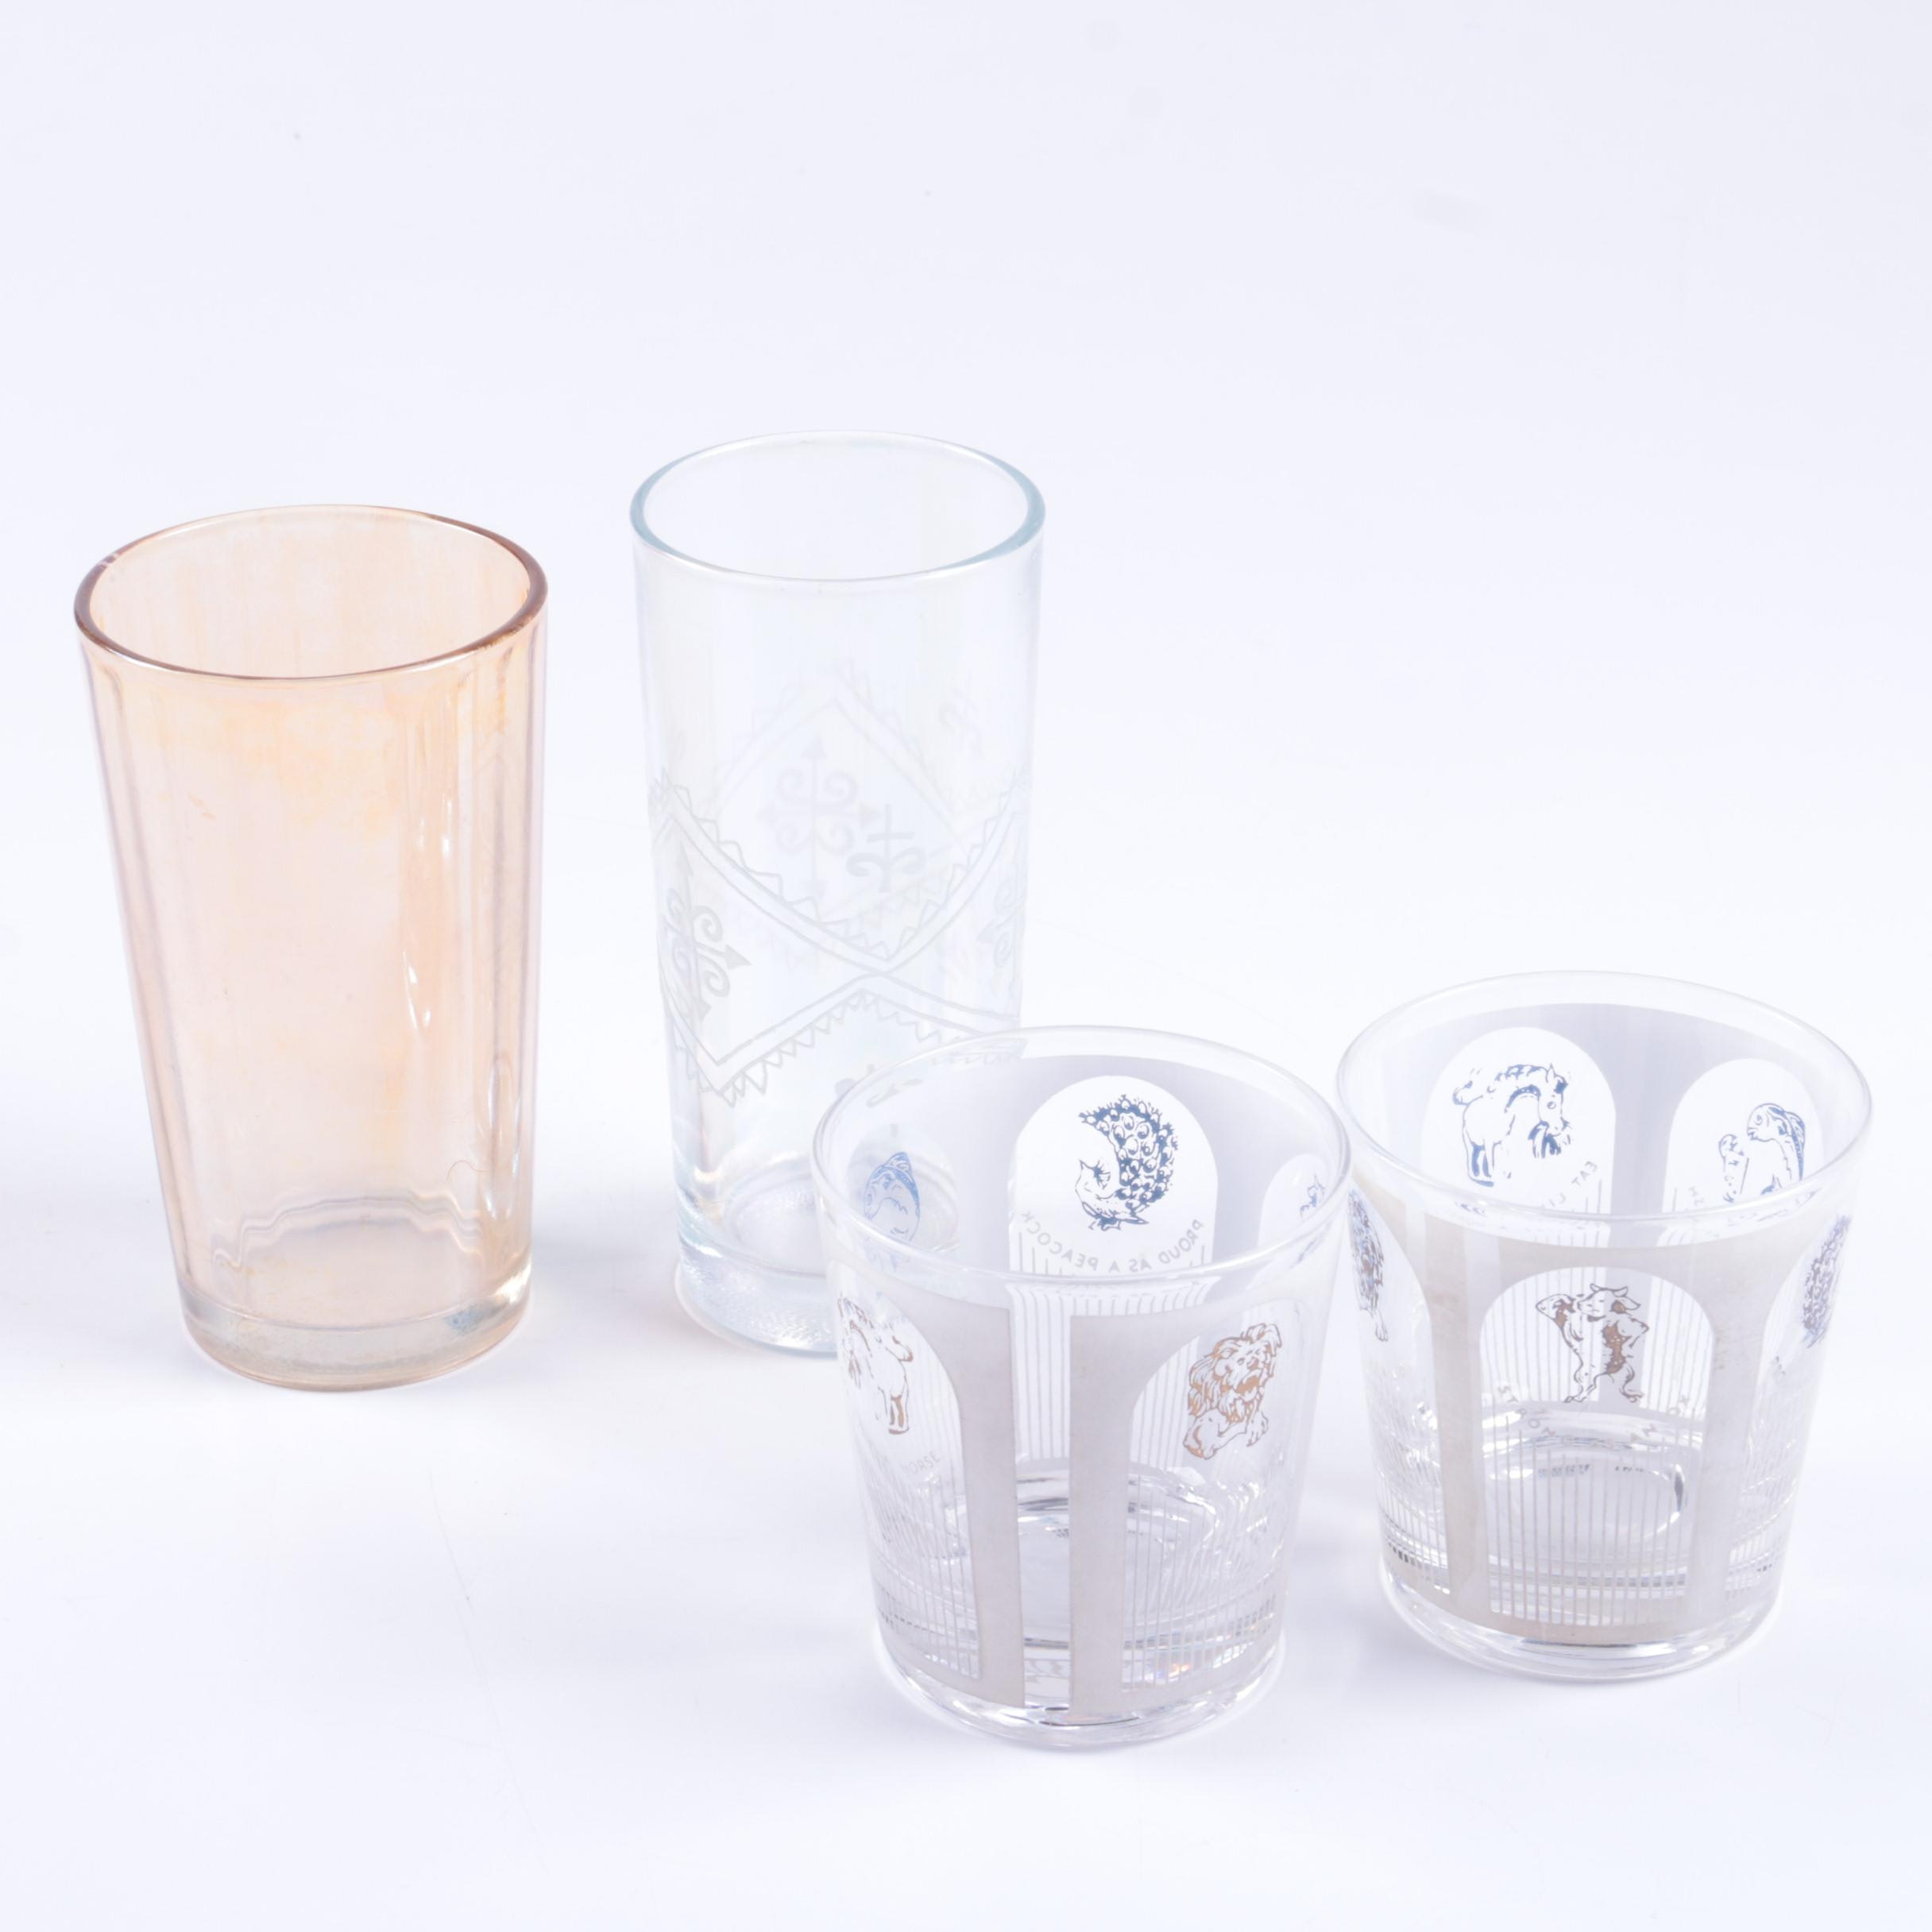 Assortment of Drinking Glasses